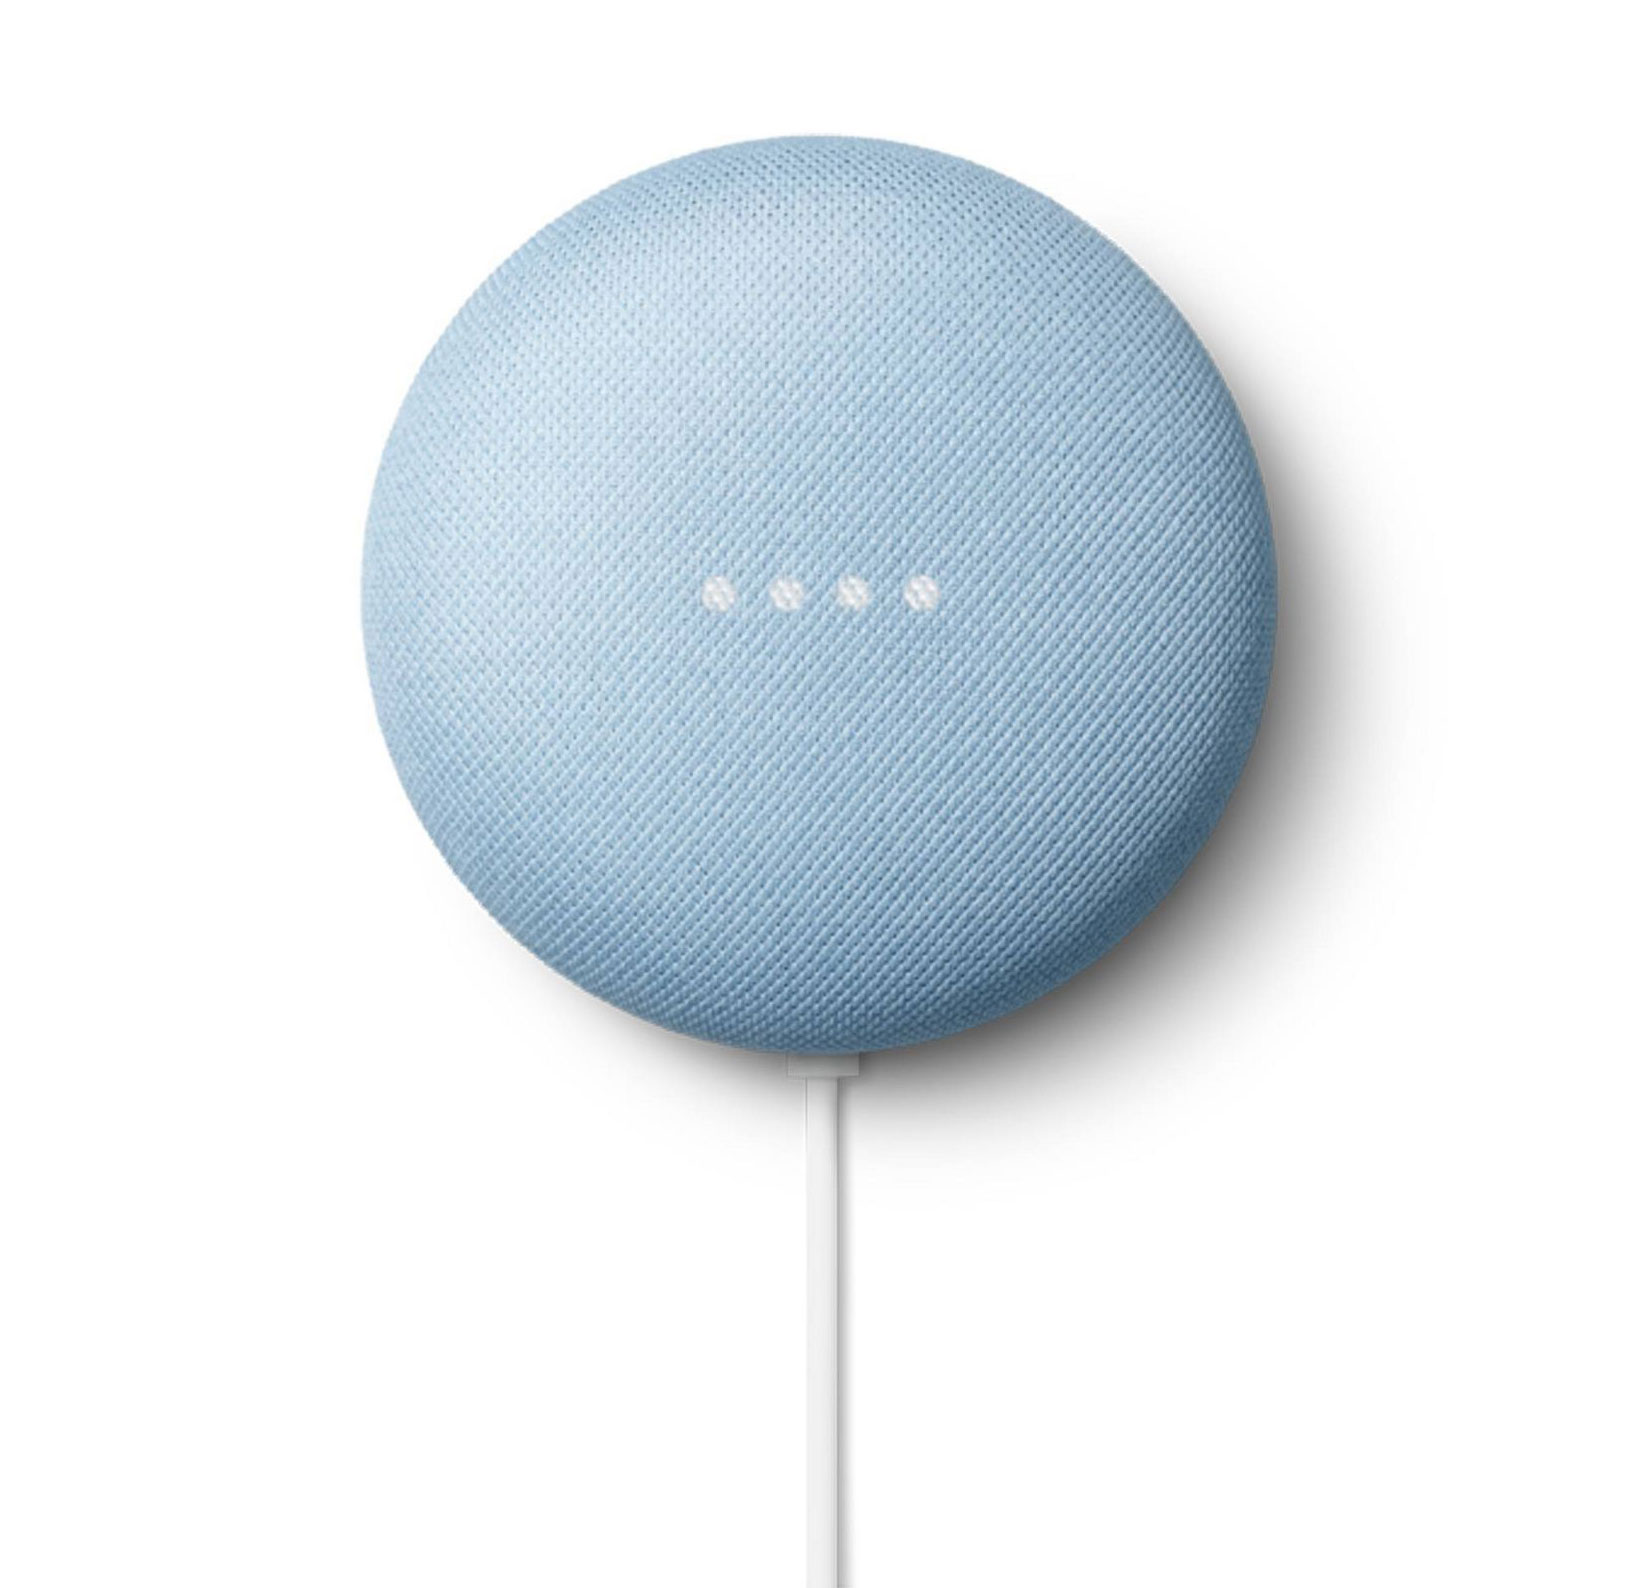 Mother's day gift ideas - Google Nest Mini